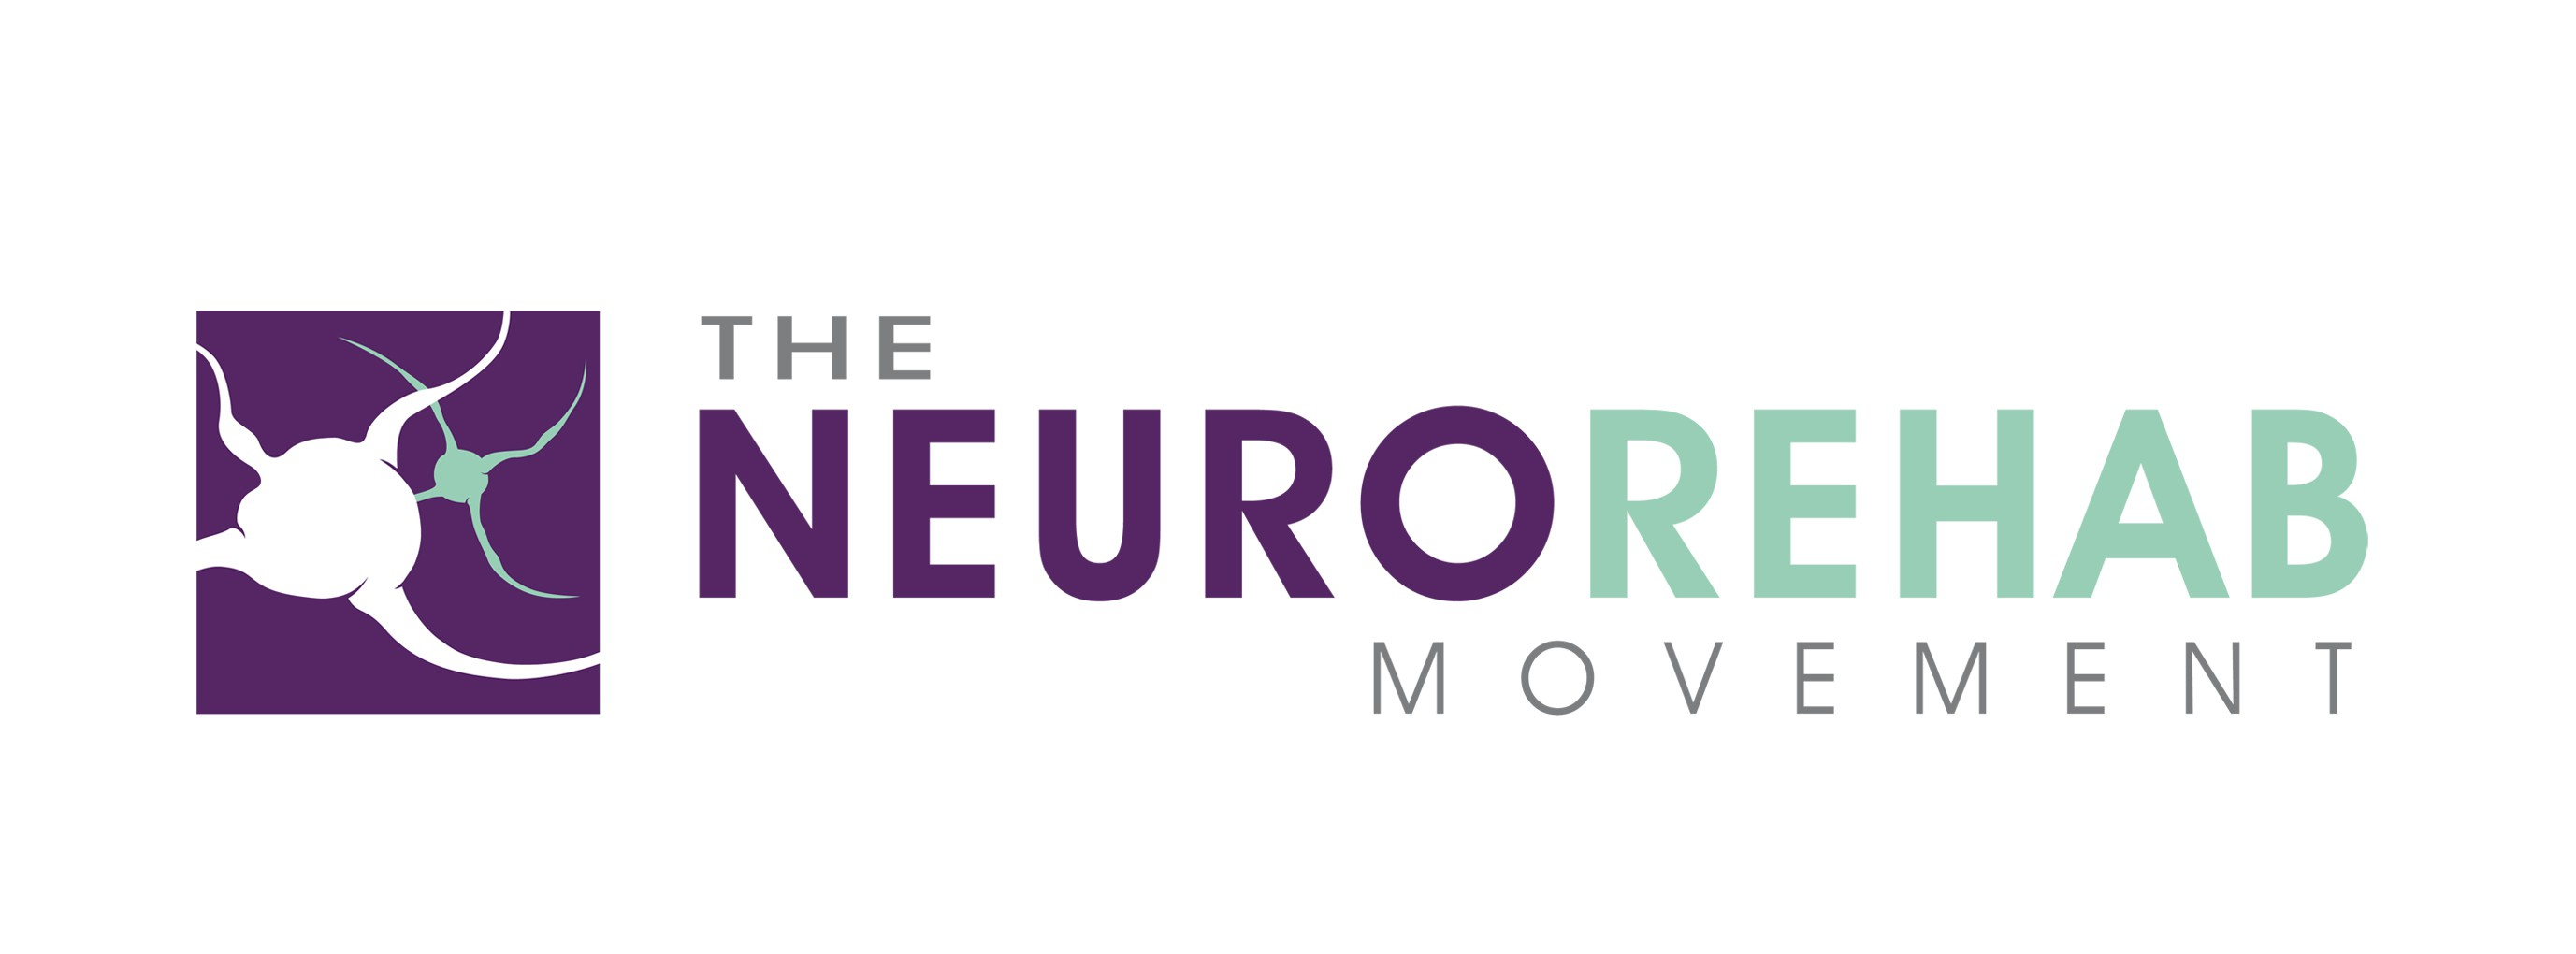 Your Brain on Exercise - The Neurorehab Movement needs a logo